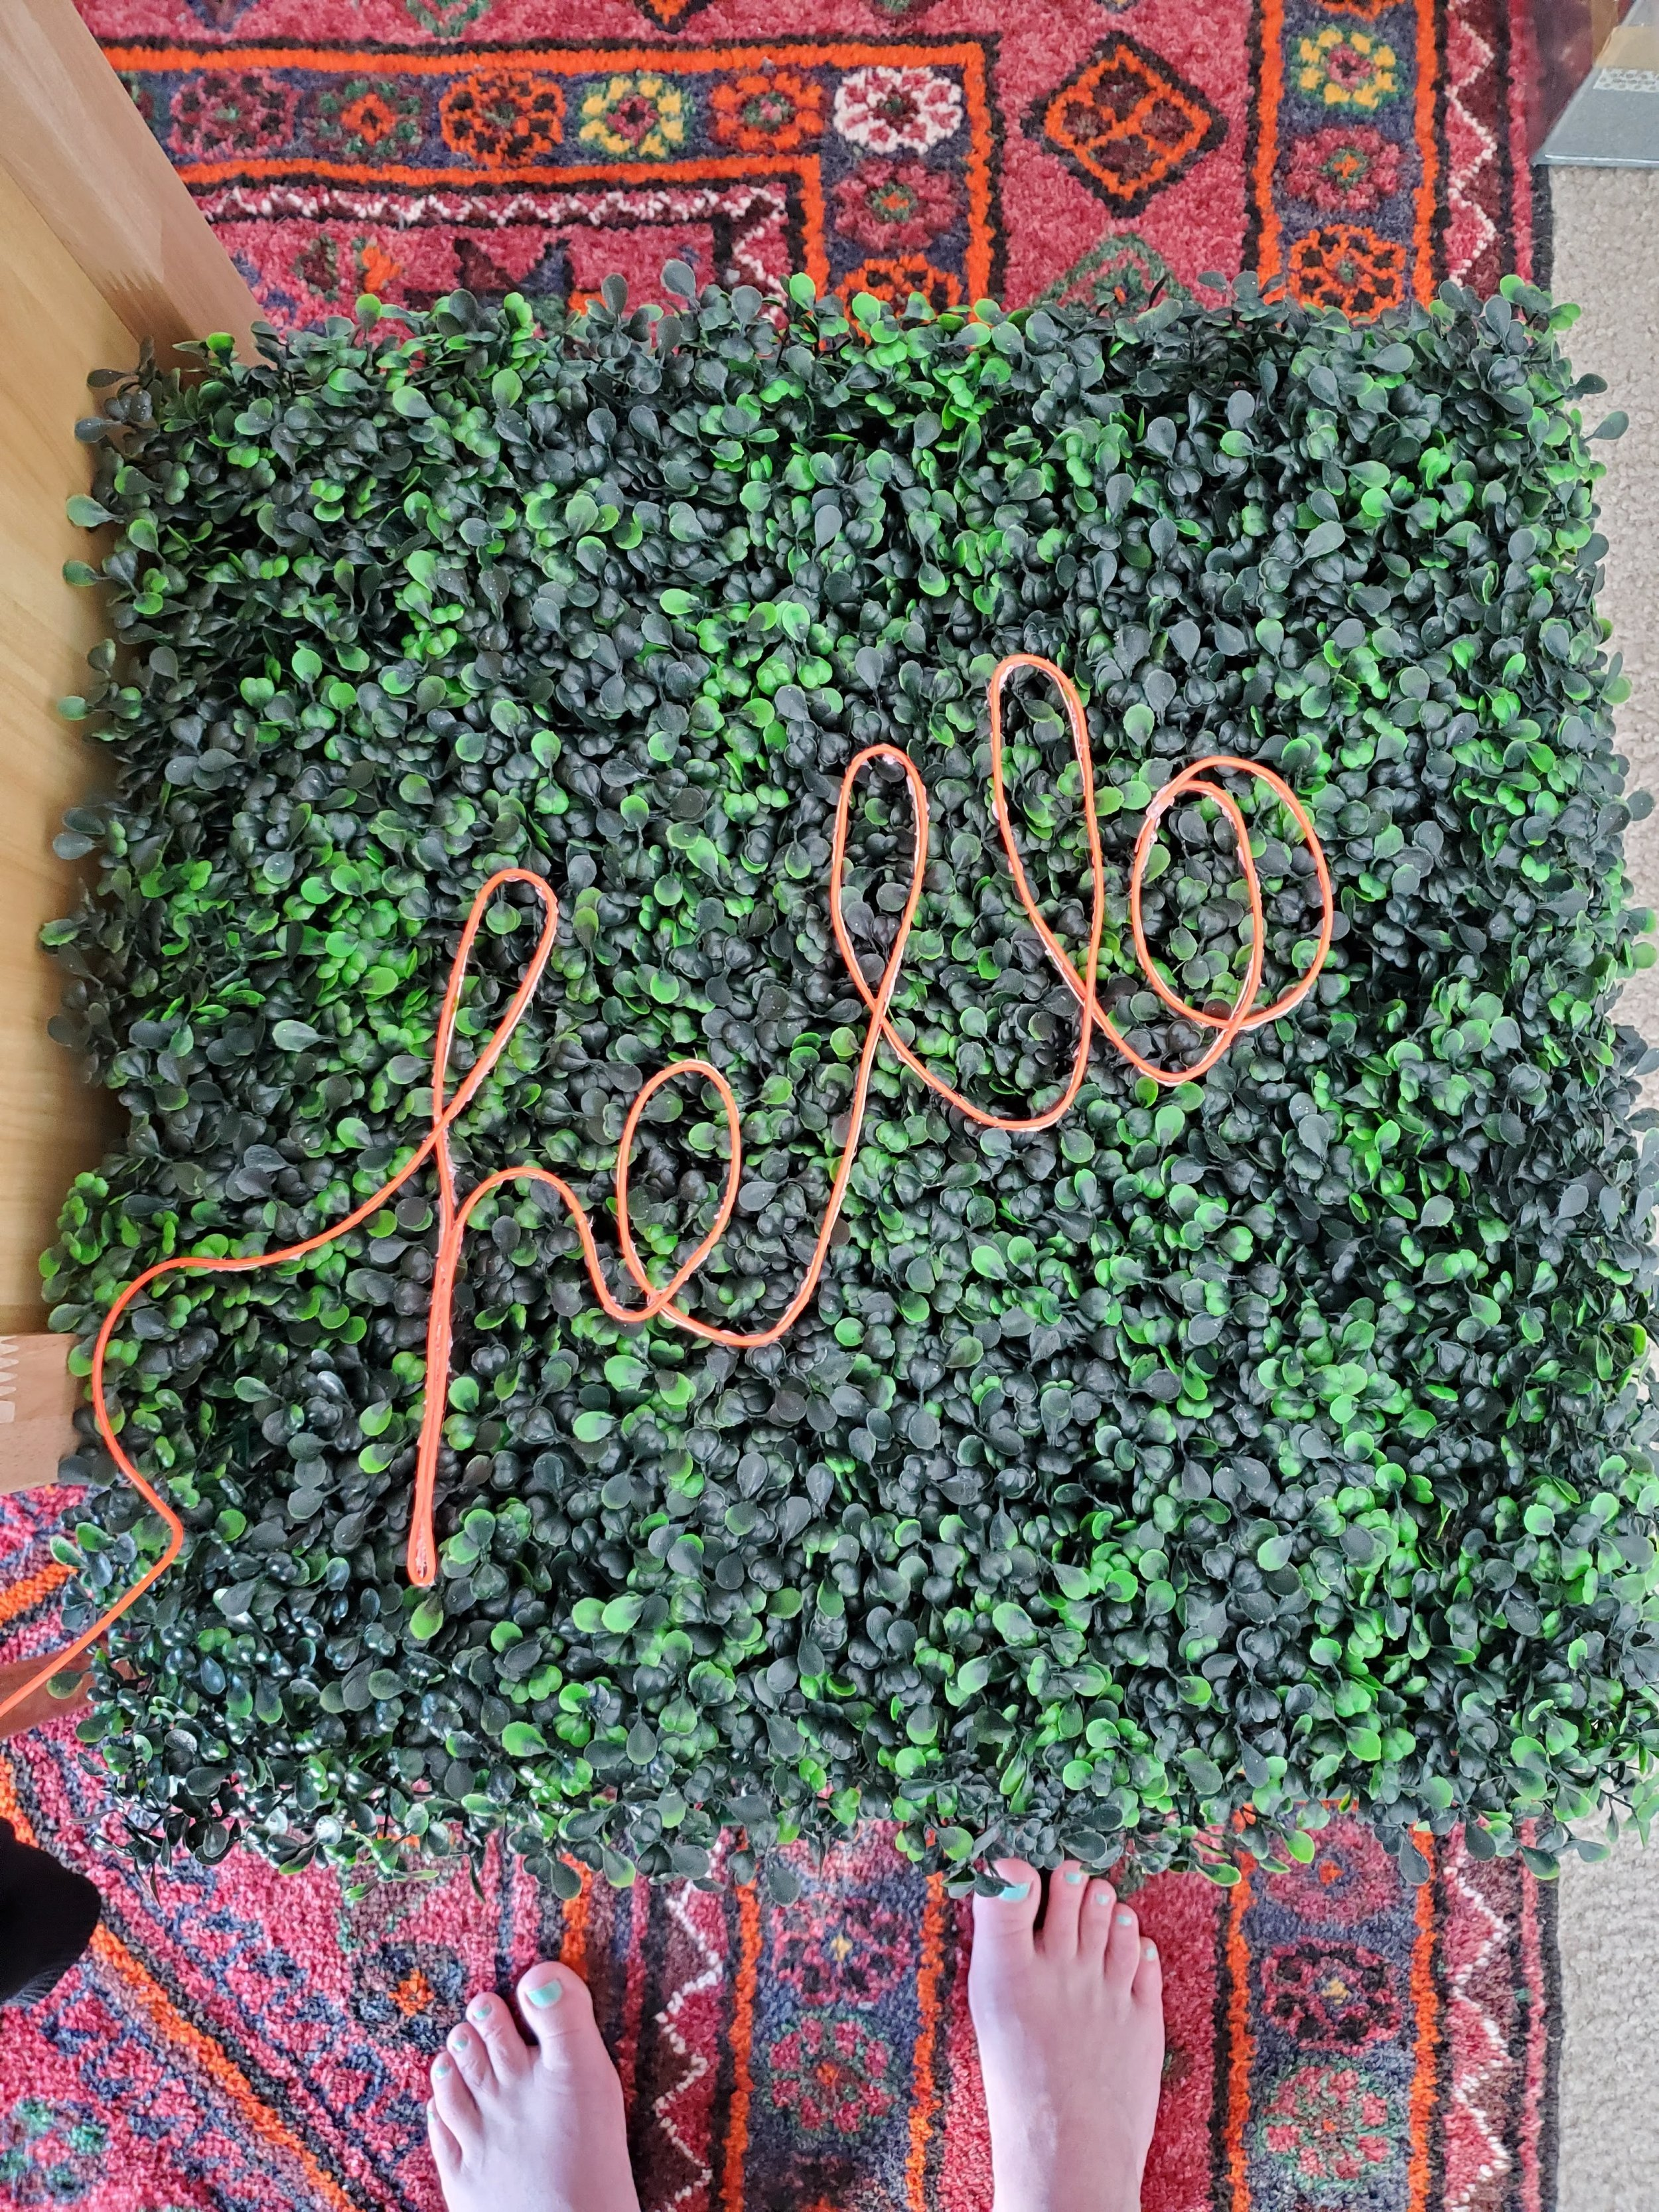 The first version of the plant wall had a neon sign that Sam built using wire and neon cord, but she wasn't 100% happy with the result.